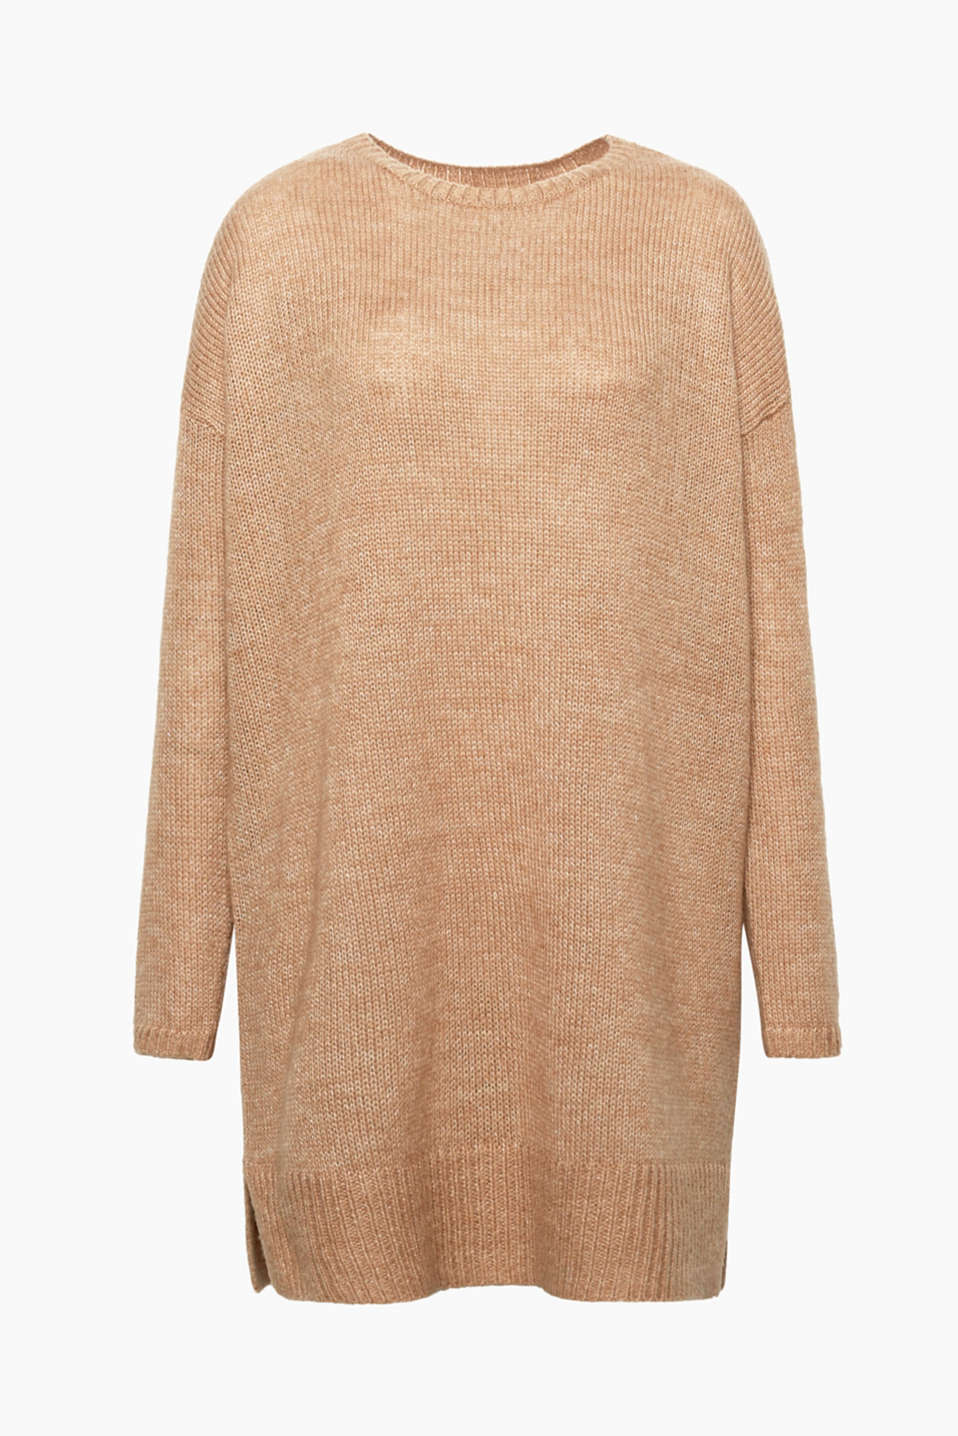 We love knitwear! This jumper wows with its oversized look and exquisite percentage of wool and mohair.